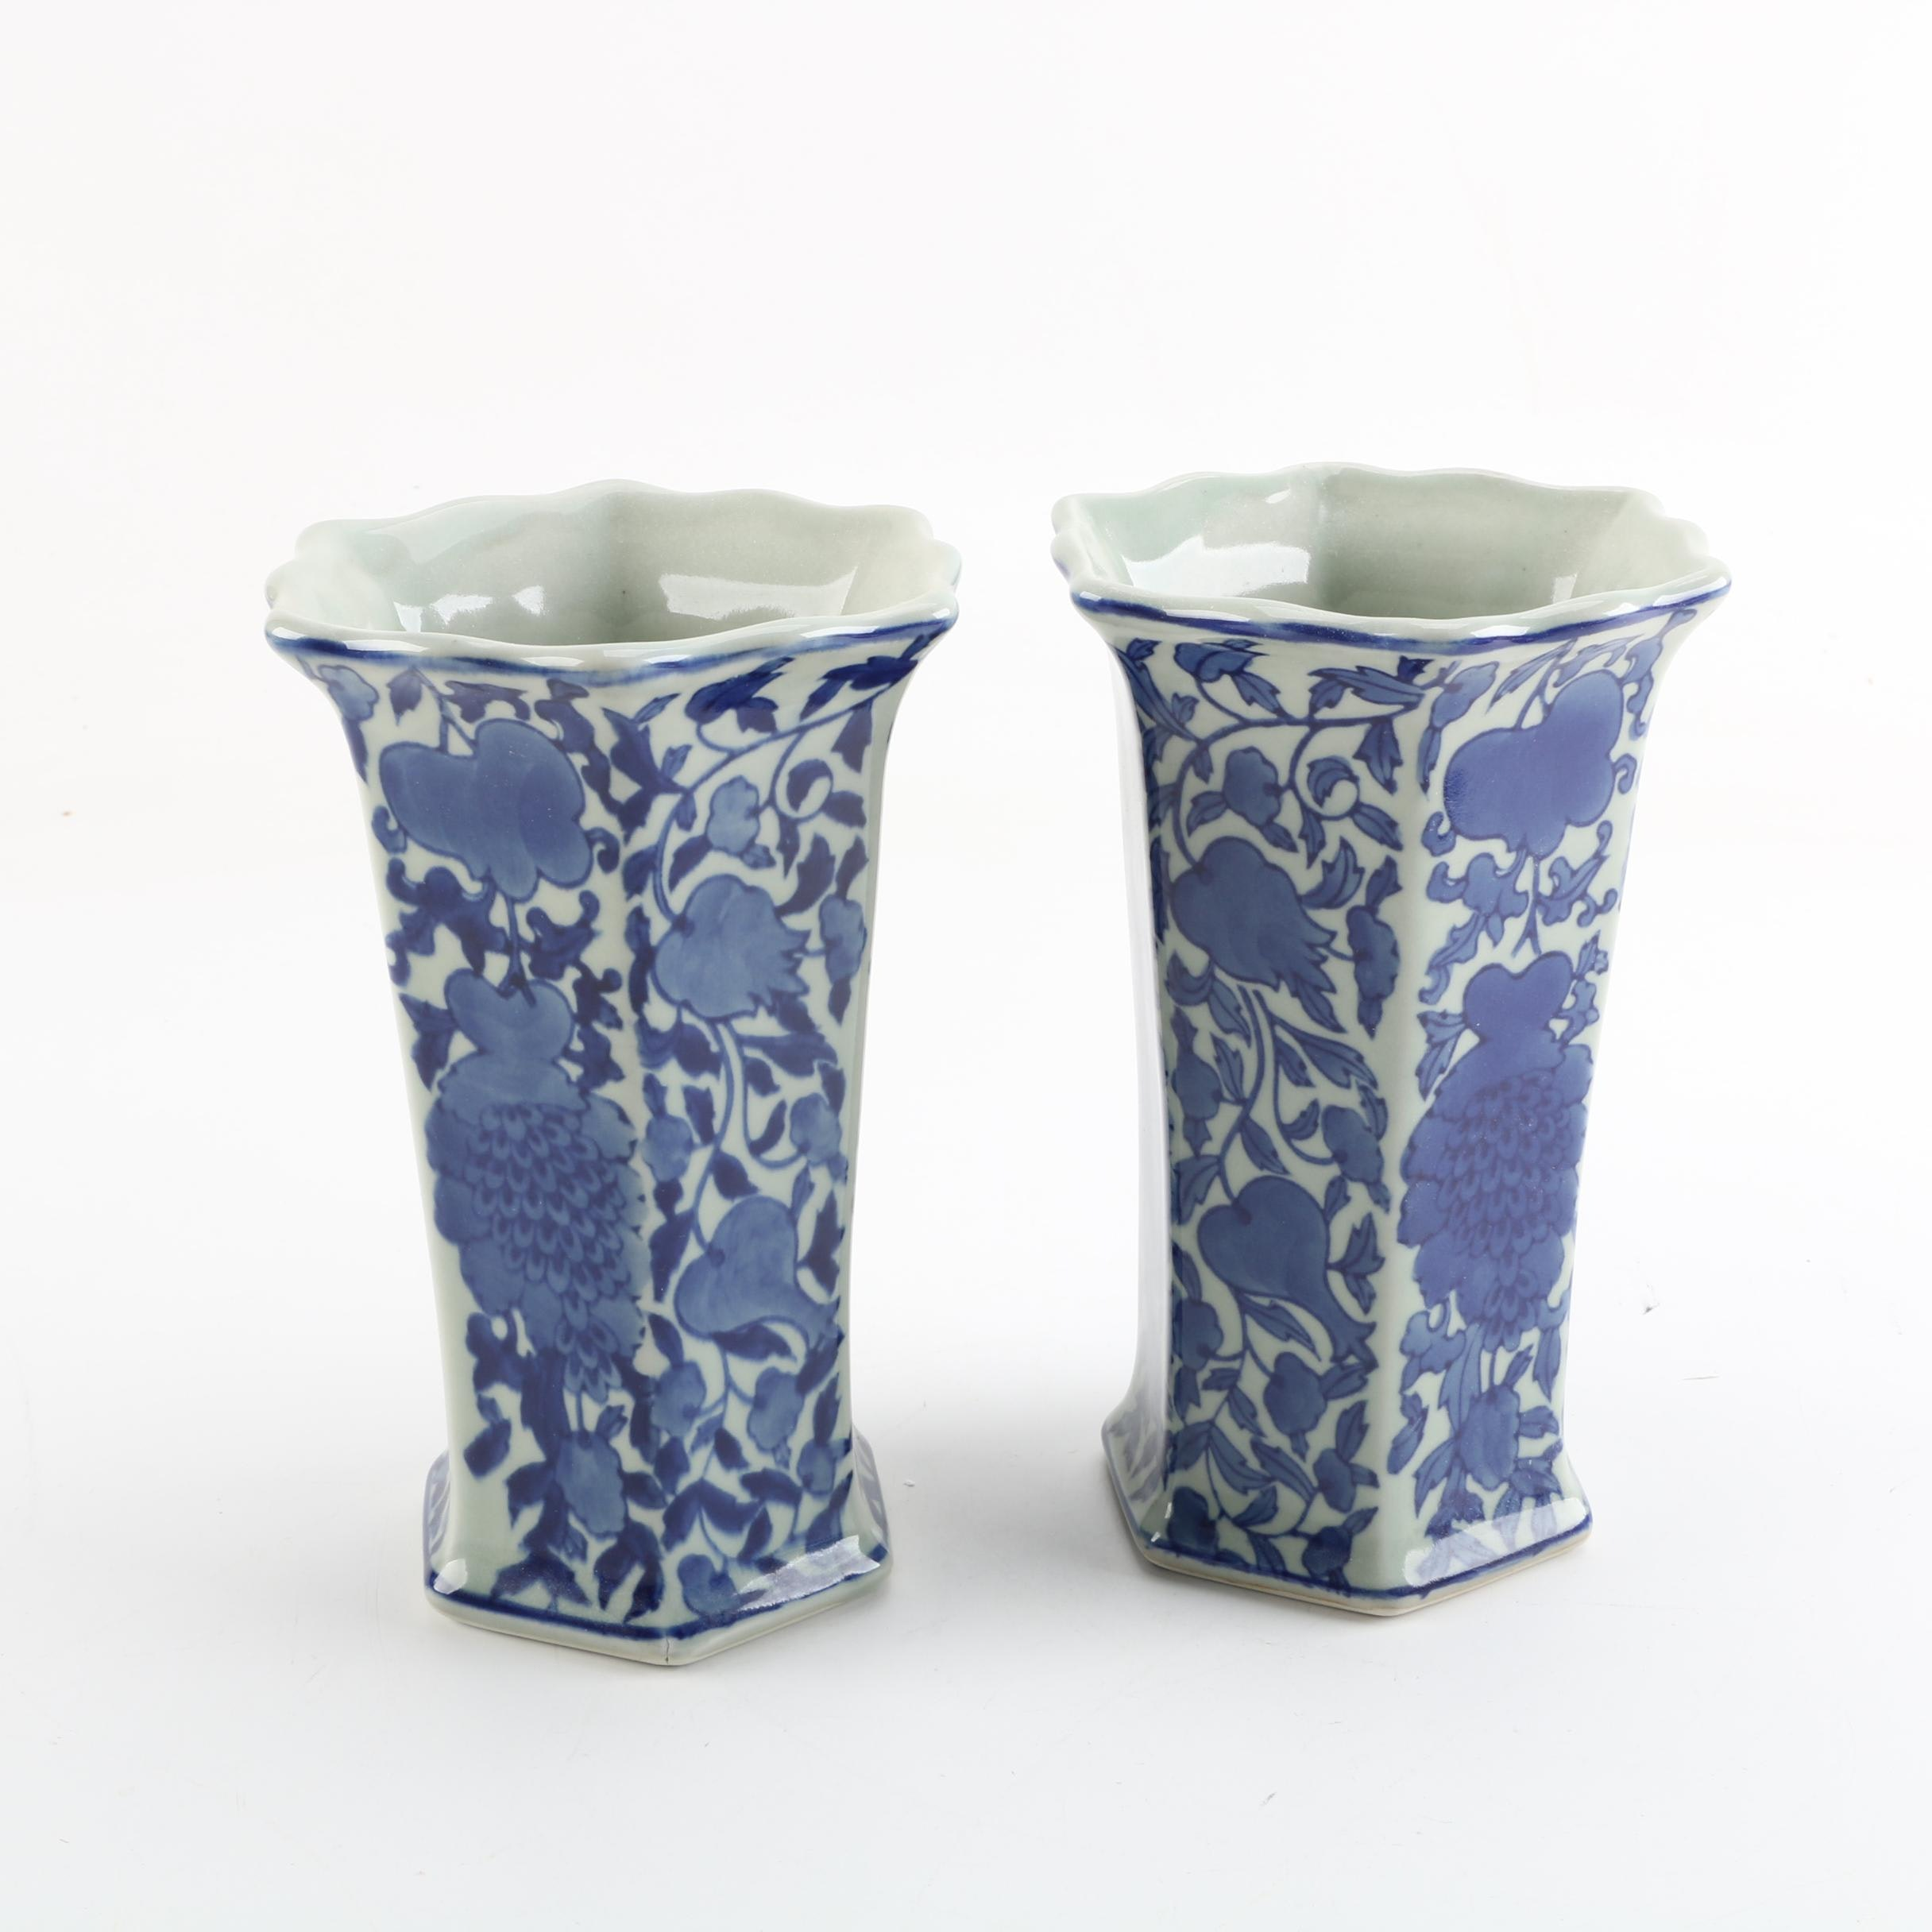 Chinese Blue and White Hand-Painted Porcelain Vases